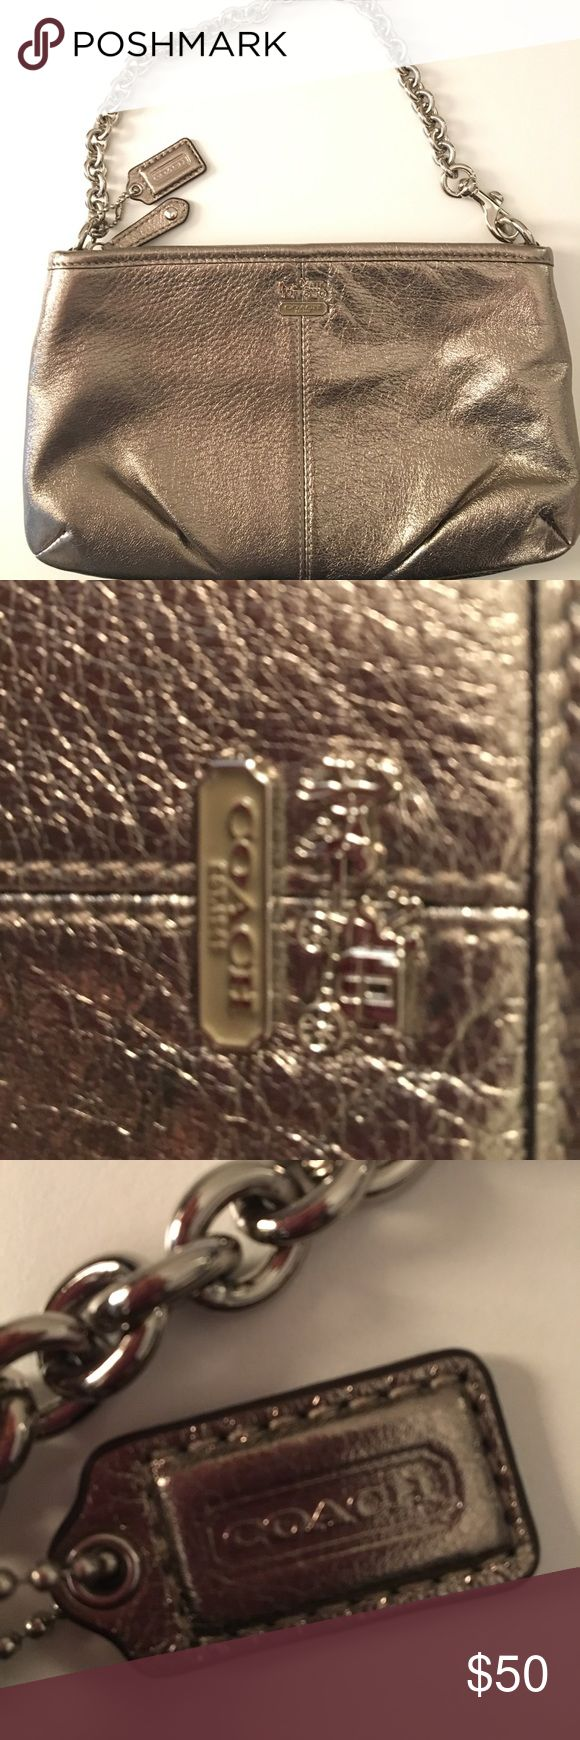 💥 AUTHENTIC COACH Pochette w/ silver link strap Barely worn small Gunmetal COACH bag with silver link chain. Interior is lined in eggplant satin. Care instructions included. Barely used. Excellent condition. Very small (barely noticeable) brush in leather. Located to bottom left of coach emblem on bag. GIFT QUALITY Coach Bags Mini Bags